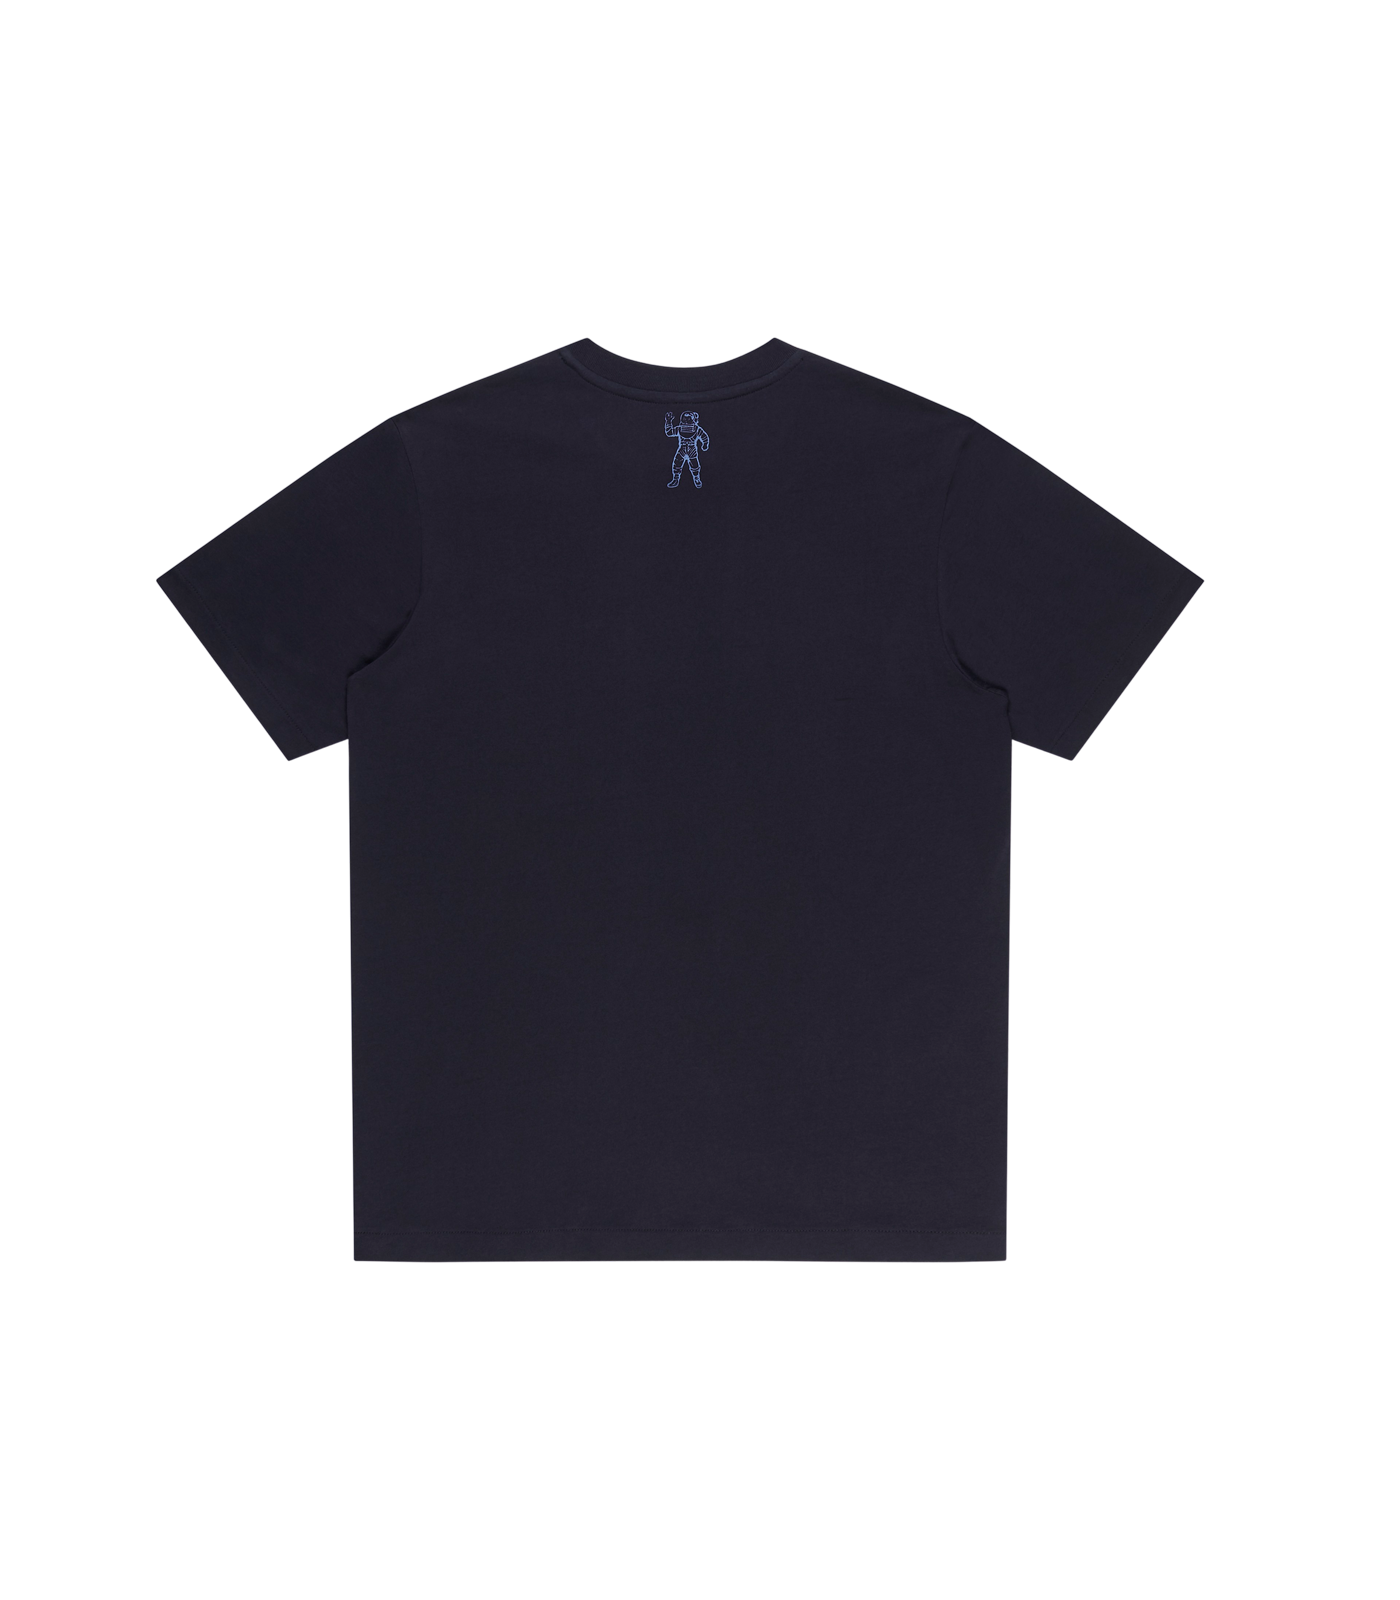 MOUNTAIN LOGO T-SHIRT - NAVY